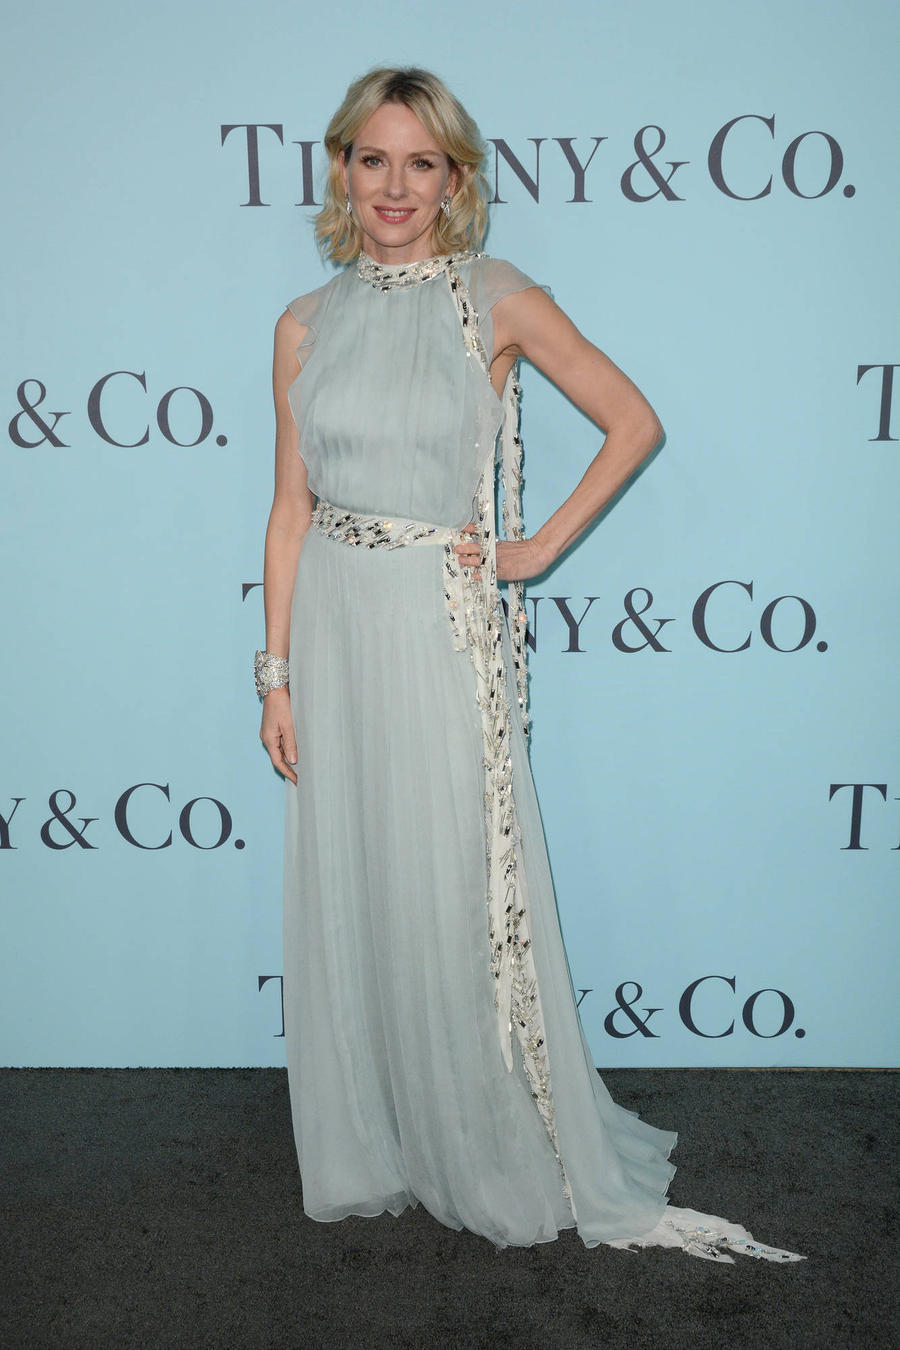 Naomi Watts And Meg Ryan Star In Charity Jewellery Campaign